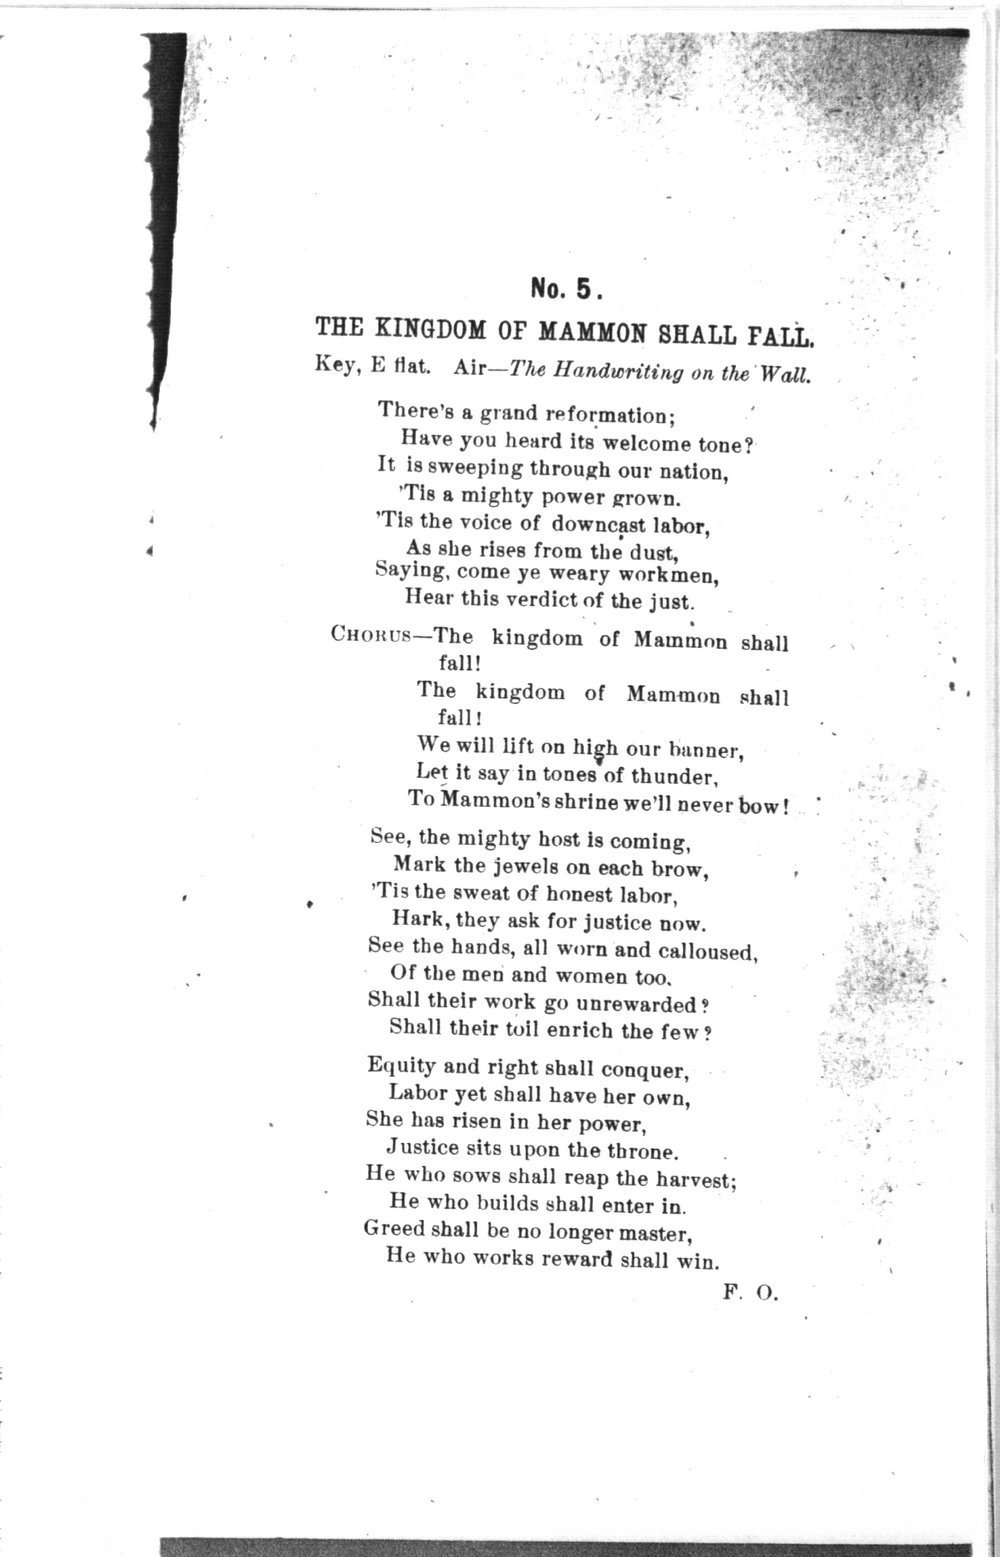 The mite:  Farmers' and Laborers' Union songs for national, state, county and subordinate unions - No. 5